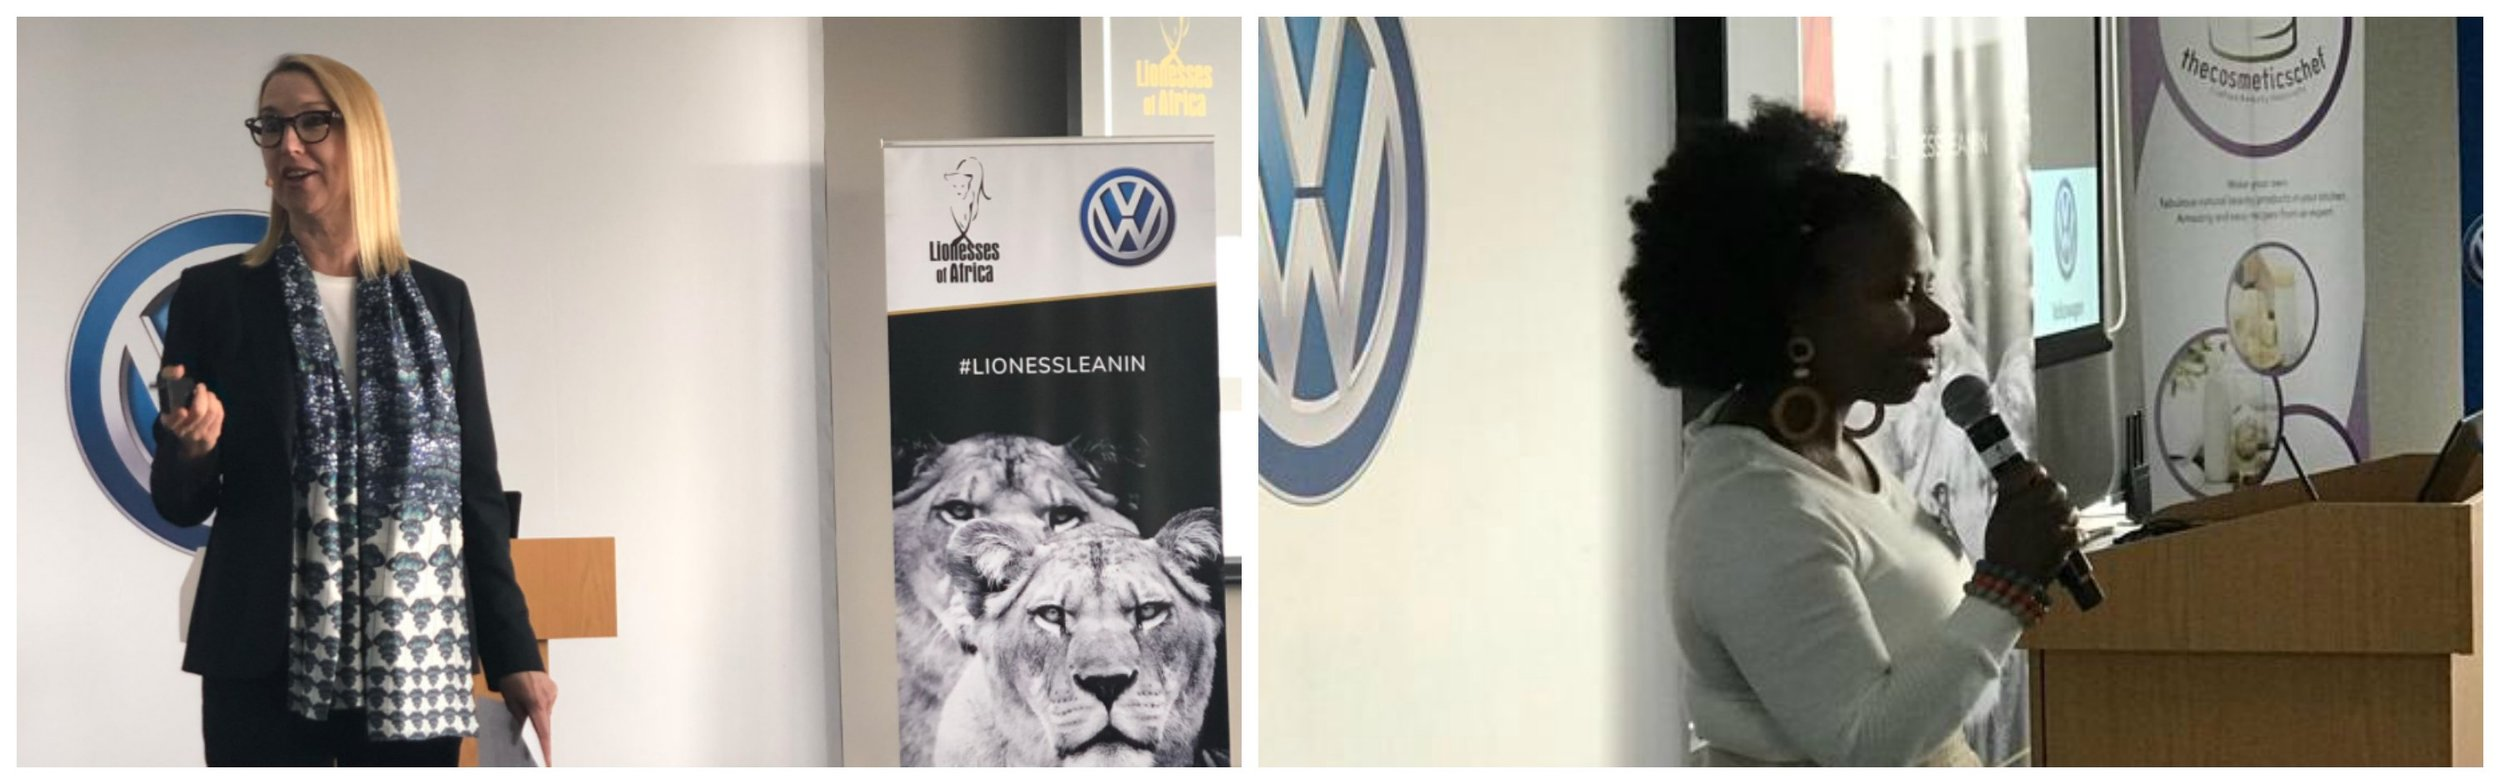 L-R: Melanie Hawken, founder and ceo, Lionesses of Africa; Nonhlanhla 'Bahatii' Sithole, performer and founder of Bahatii Productions